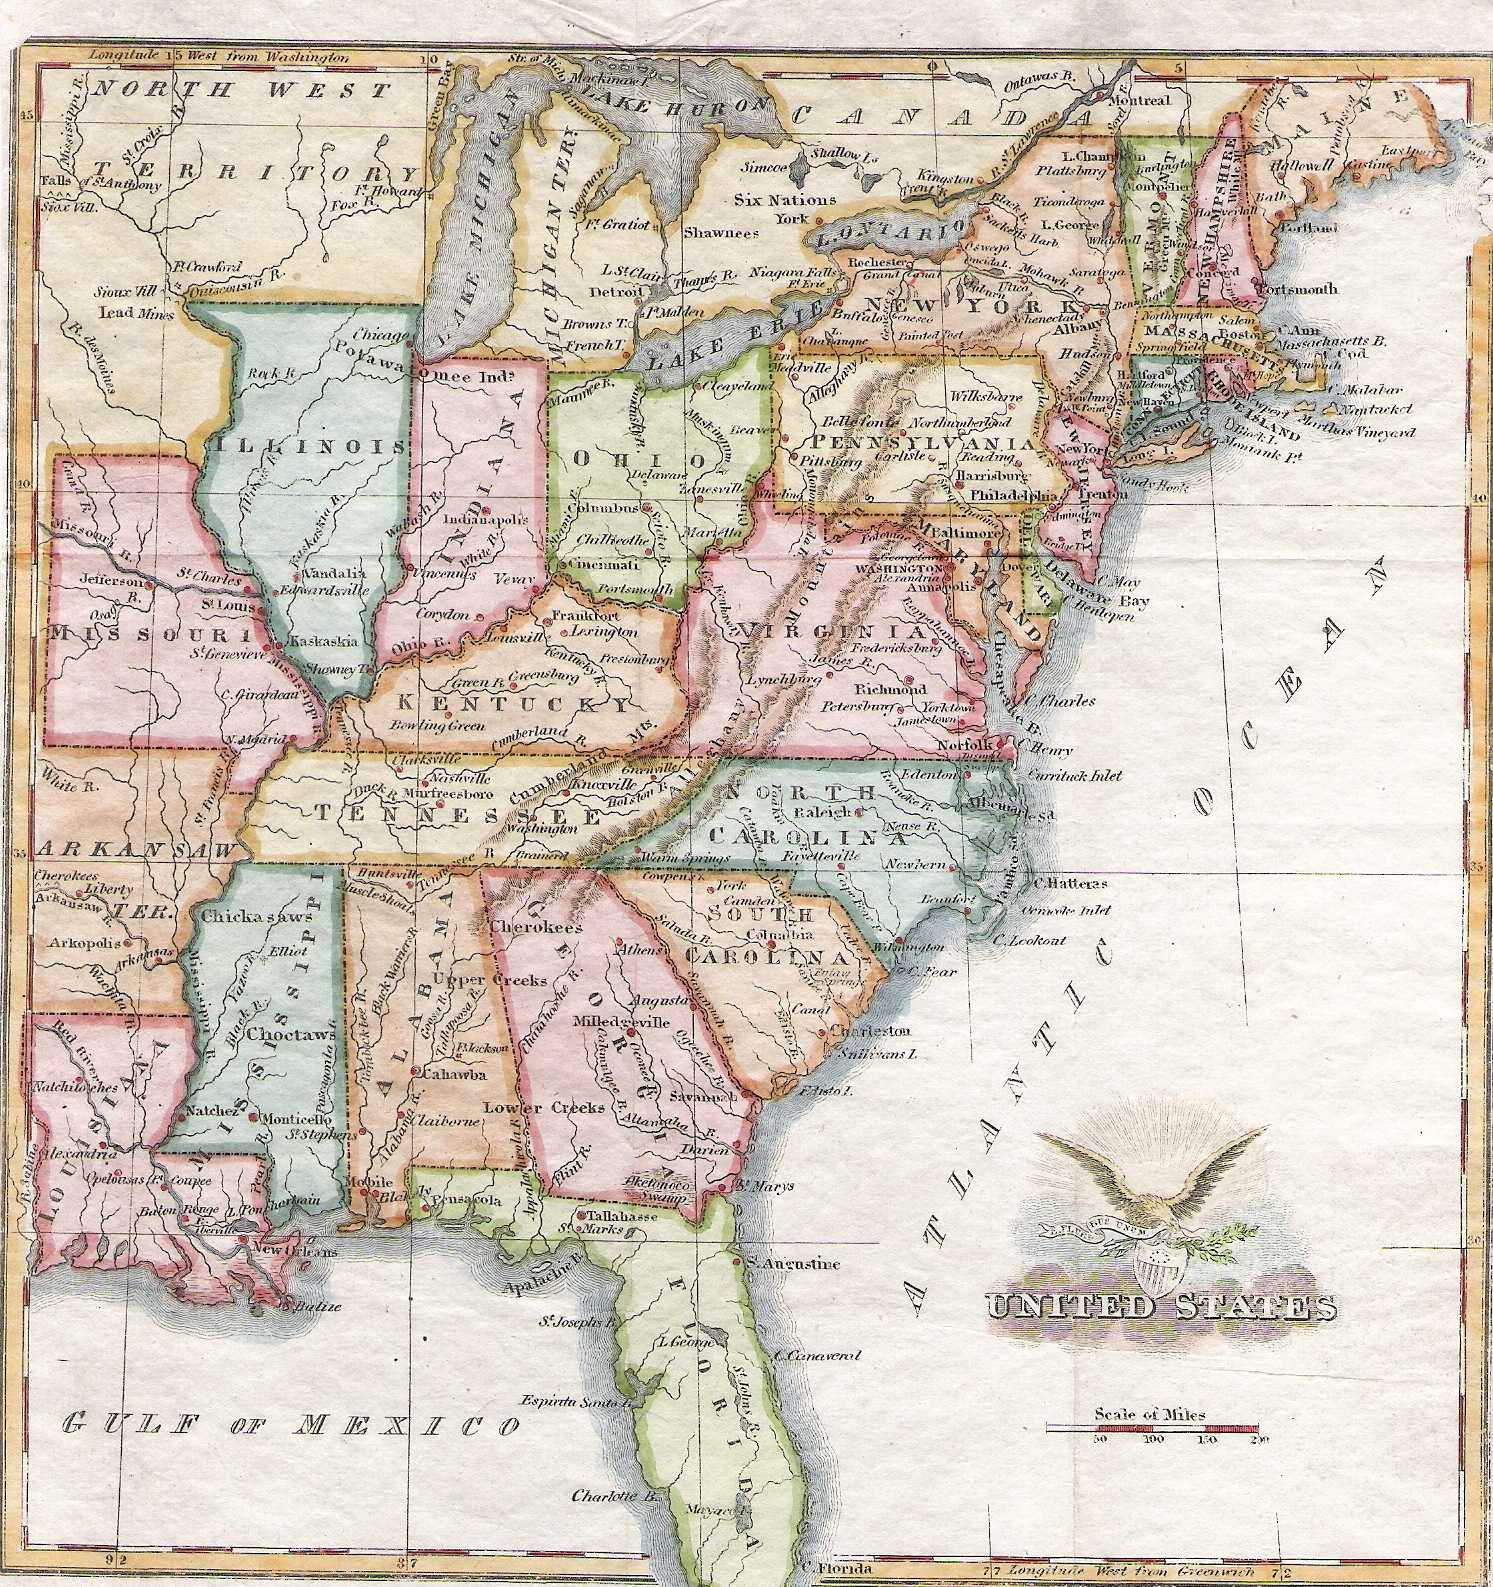 S Pennsylvania Maps - 1830 us map